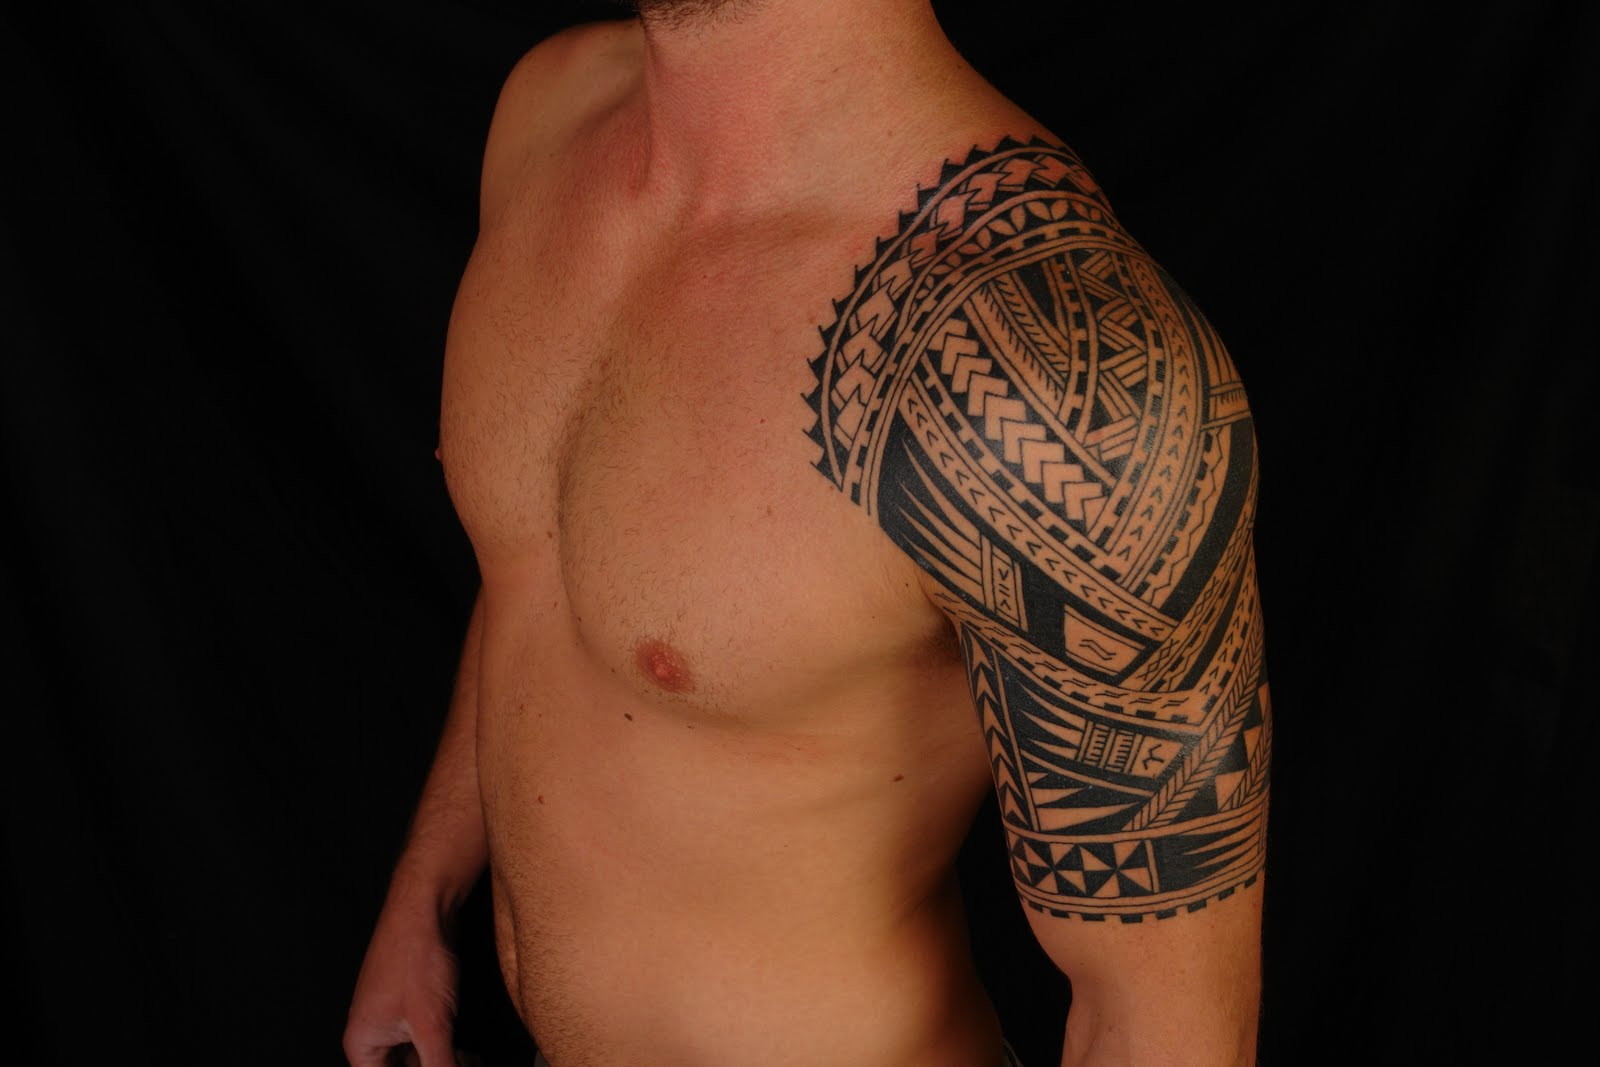 Half sleeve tattoos sleeve tattoo designs tattoo pictures ideas